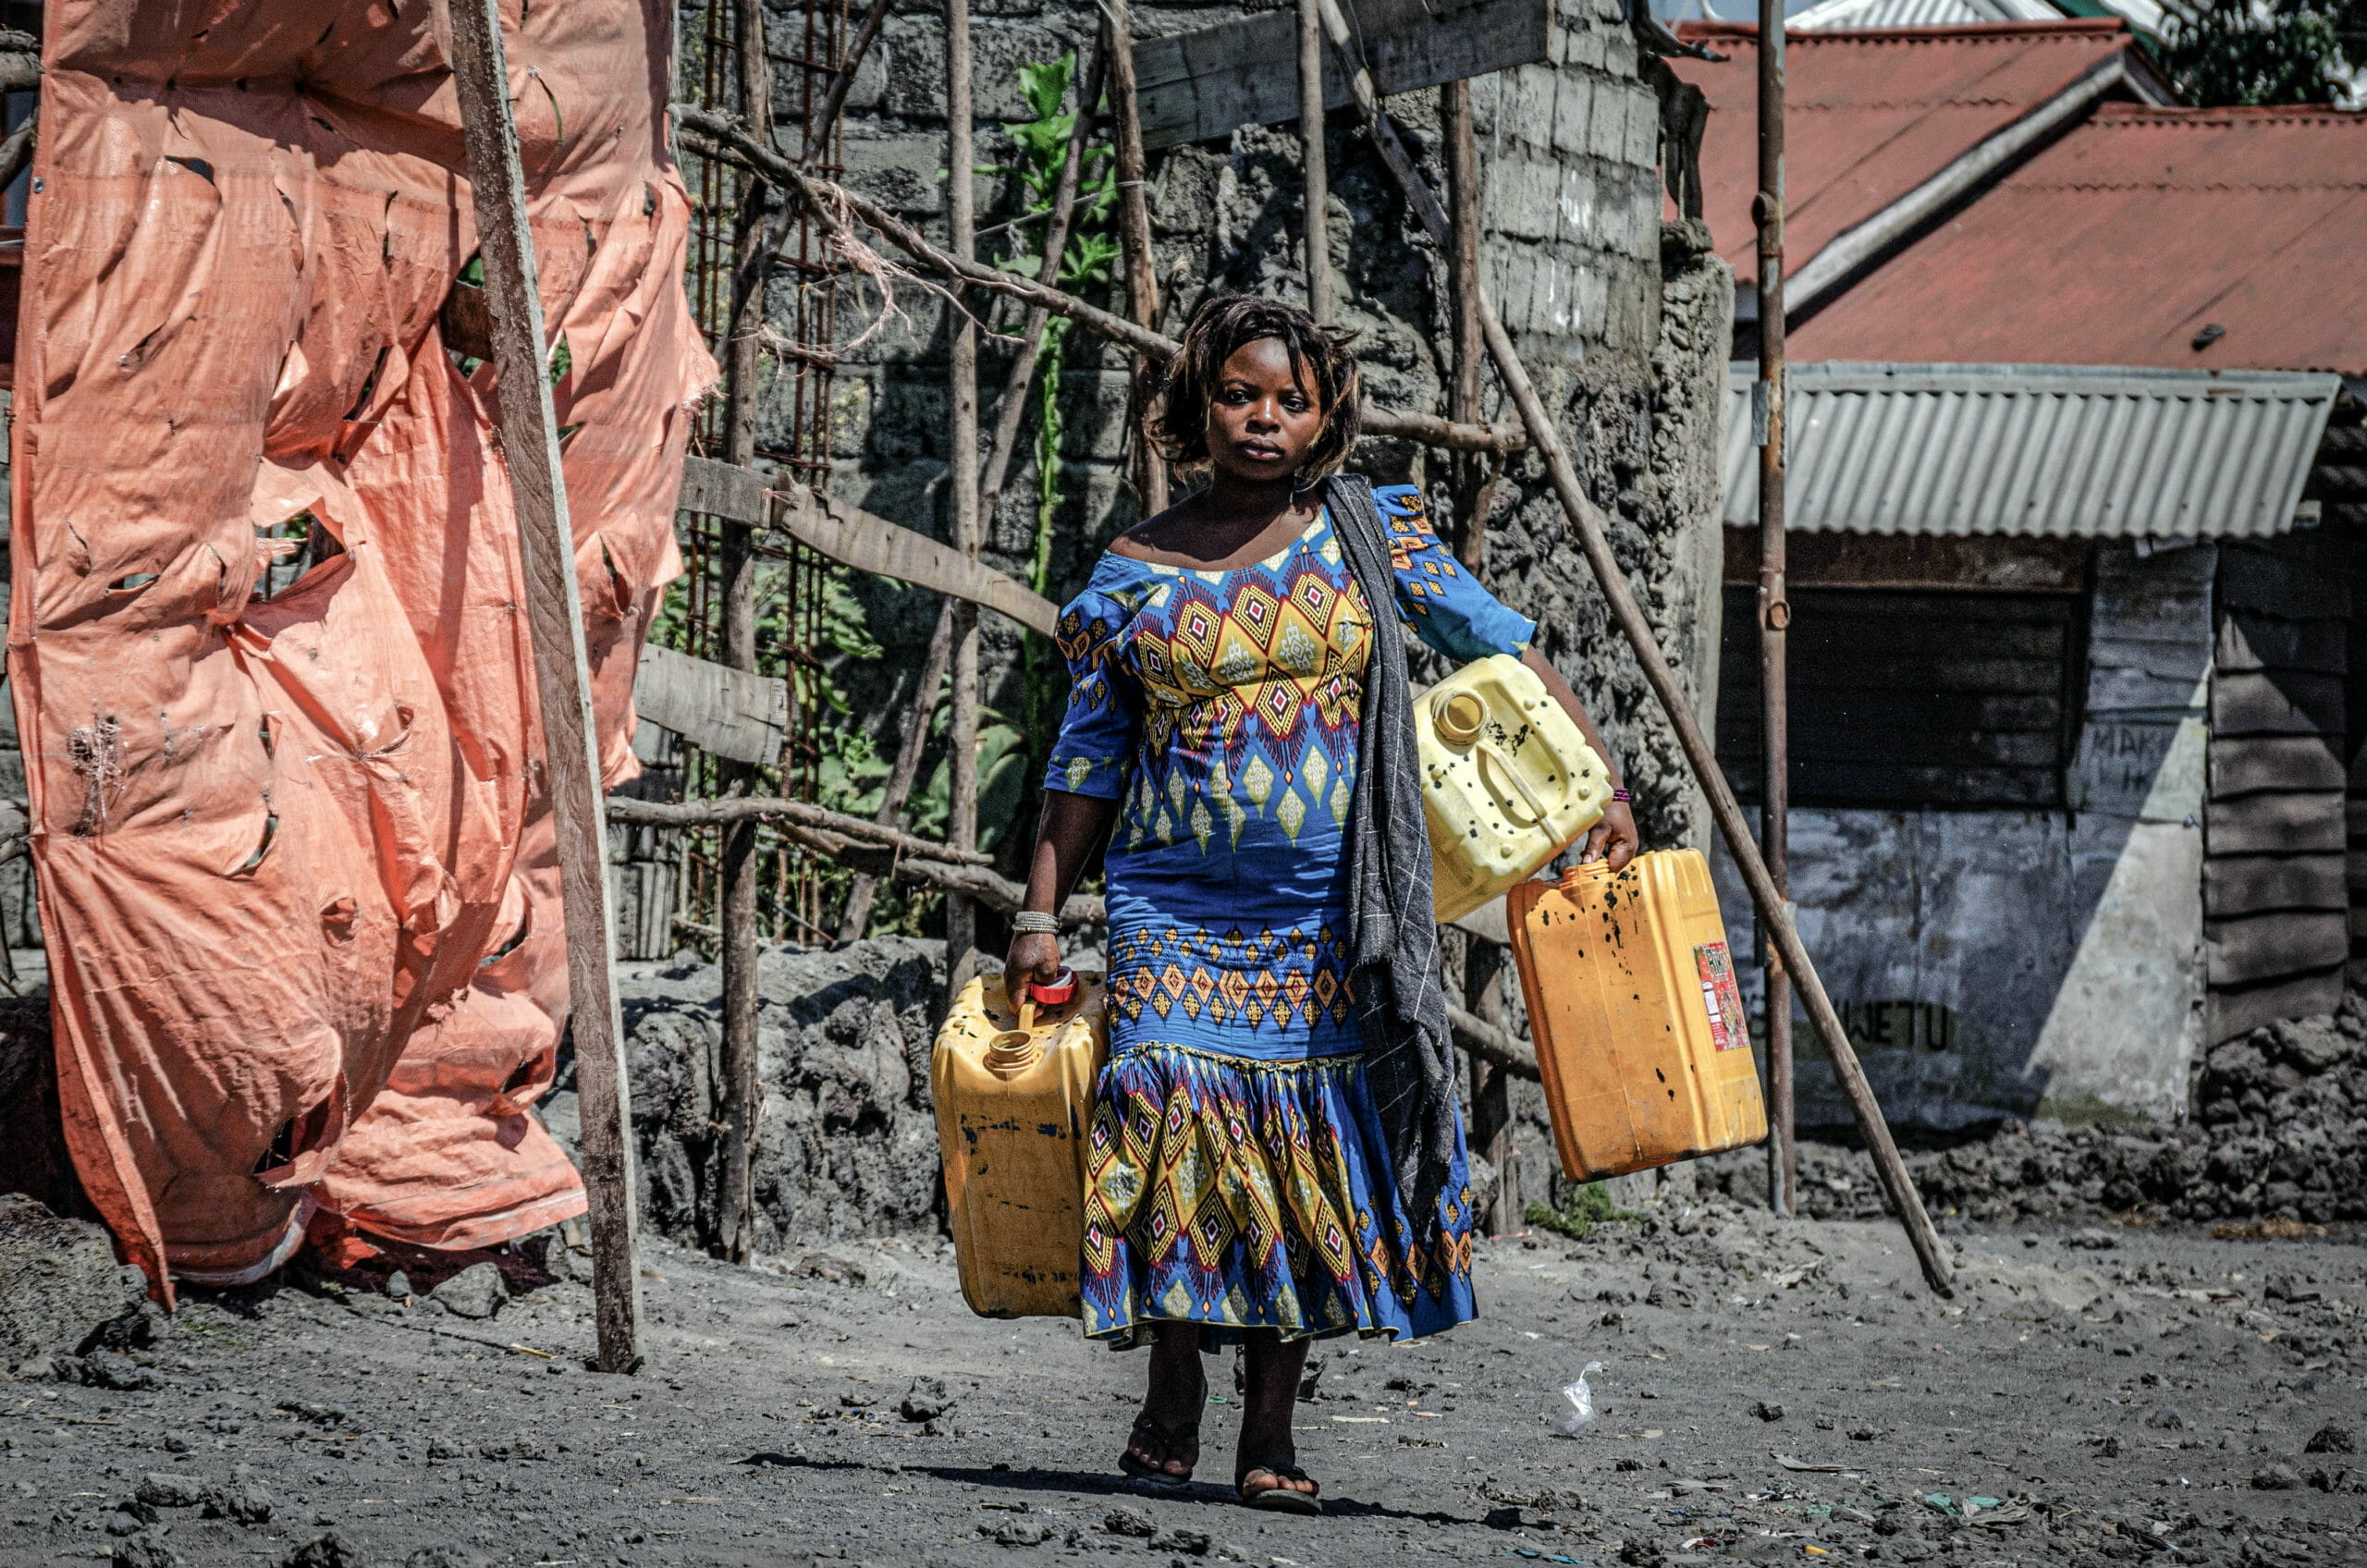 Goma, Democratic Republic of Congo, May 2020. A woman carries water containers in Goma, the capital of eastern Congo's North Kivu Province last month. Congo's state water provider Regideso promised free access to water at the start of the coronavirus outbreak in March, but with few people connected to water mains and poor service for those who are, the lack of water during the pandemic has made it difficult to adhere to health advisories and hygiene measures and has led to protests in Goma, which sits on the shores of Lake Kivu. © Arlette Bashizi for Fondation Carmignac